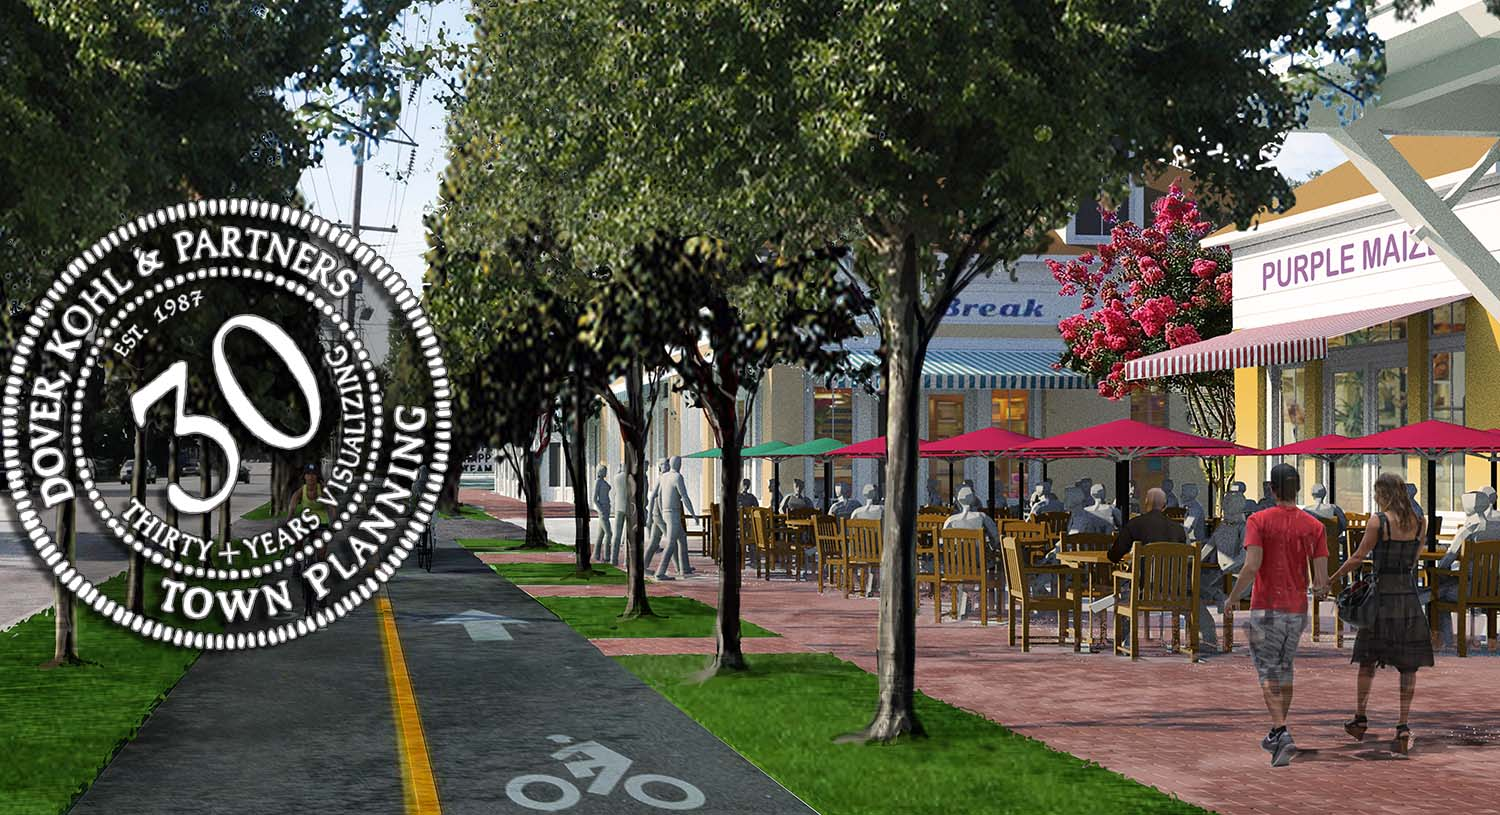 Commercial Core North - 03 - bikeway and buildings - rev 2.jpg